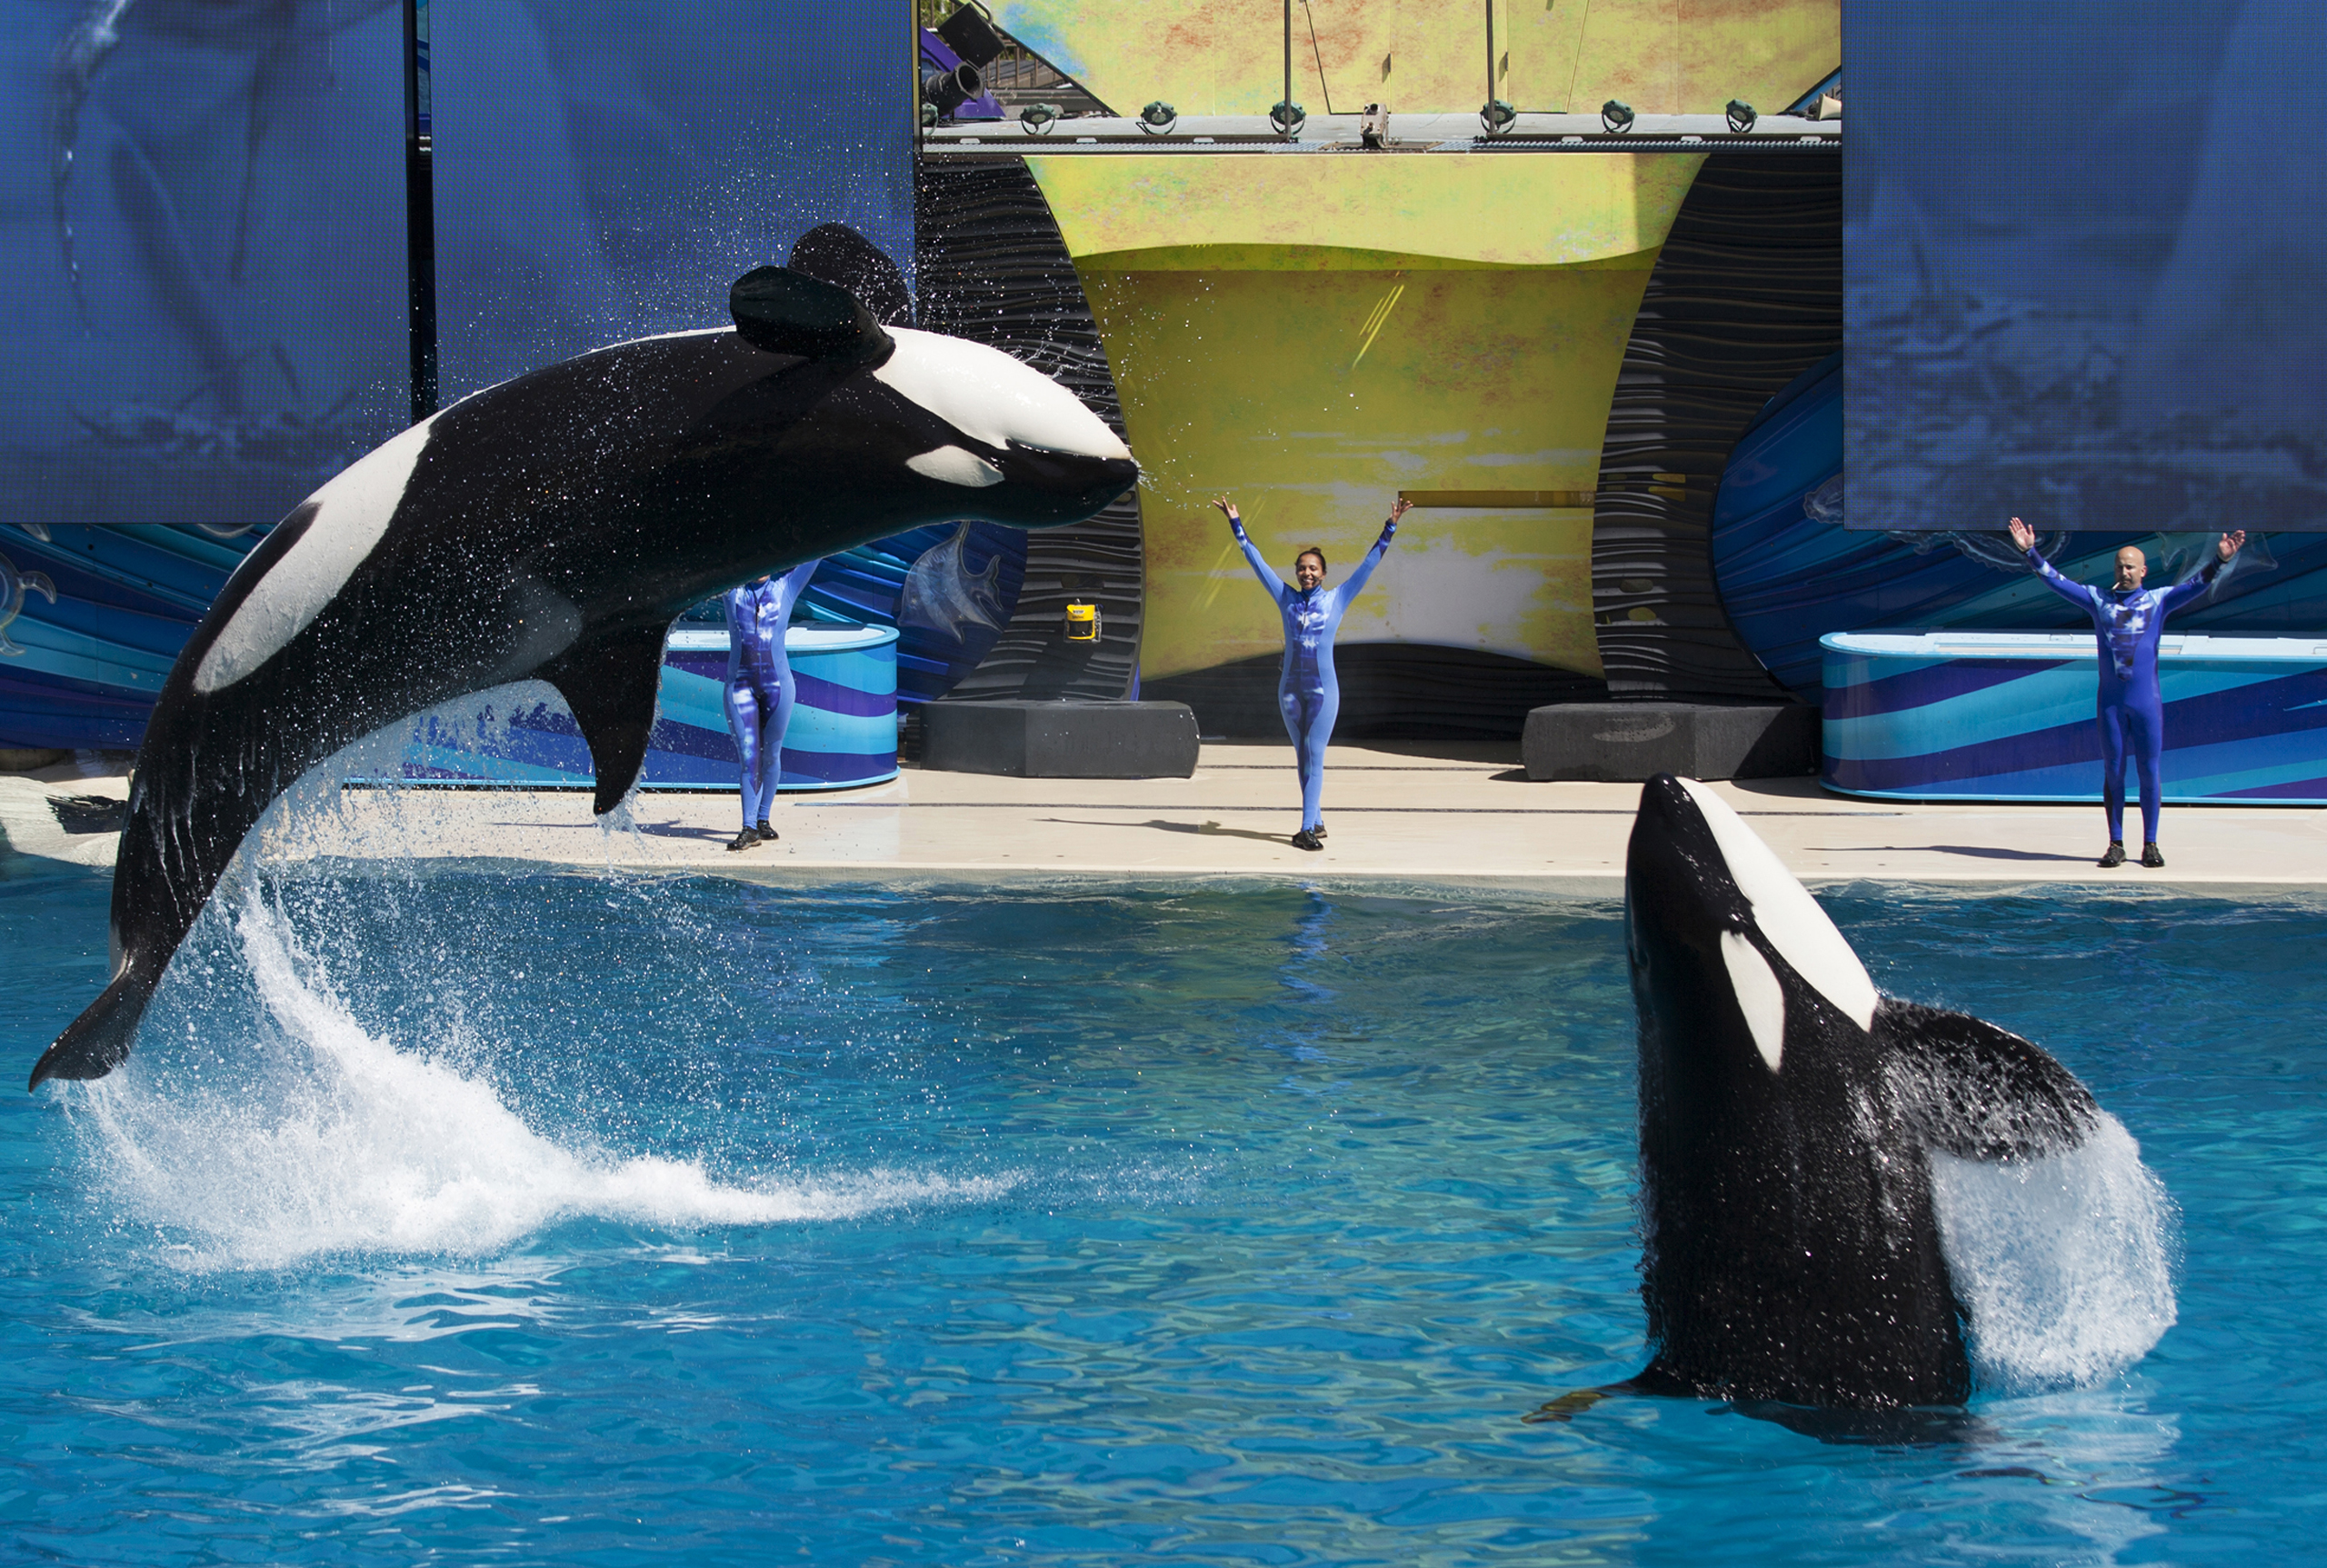 Trainers have killer whales perform for the crowd during a show at SeaWorld in San Diego, California, on March 19, 2014.